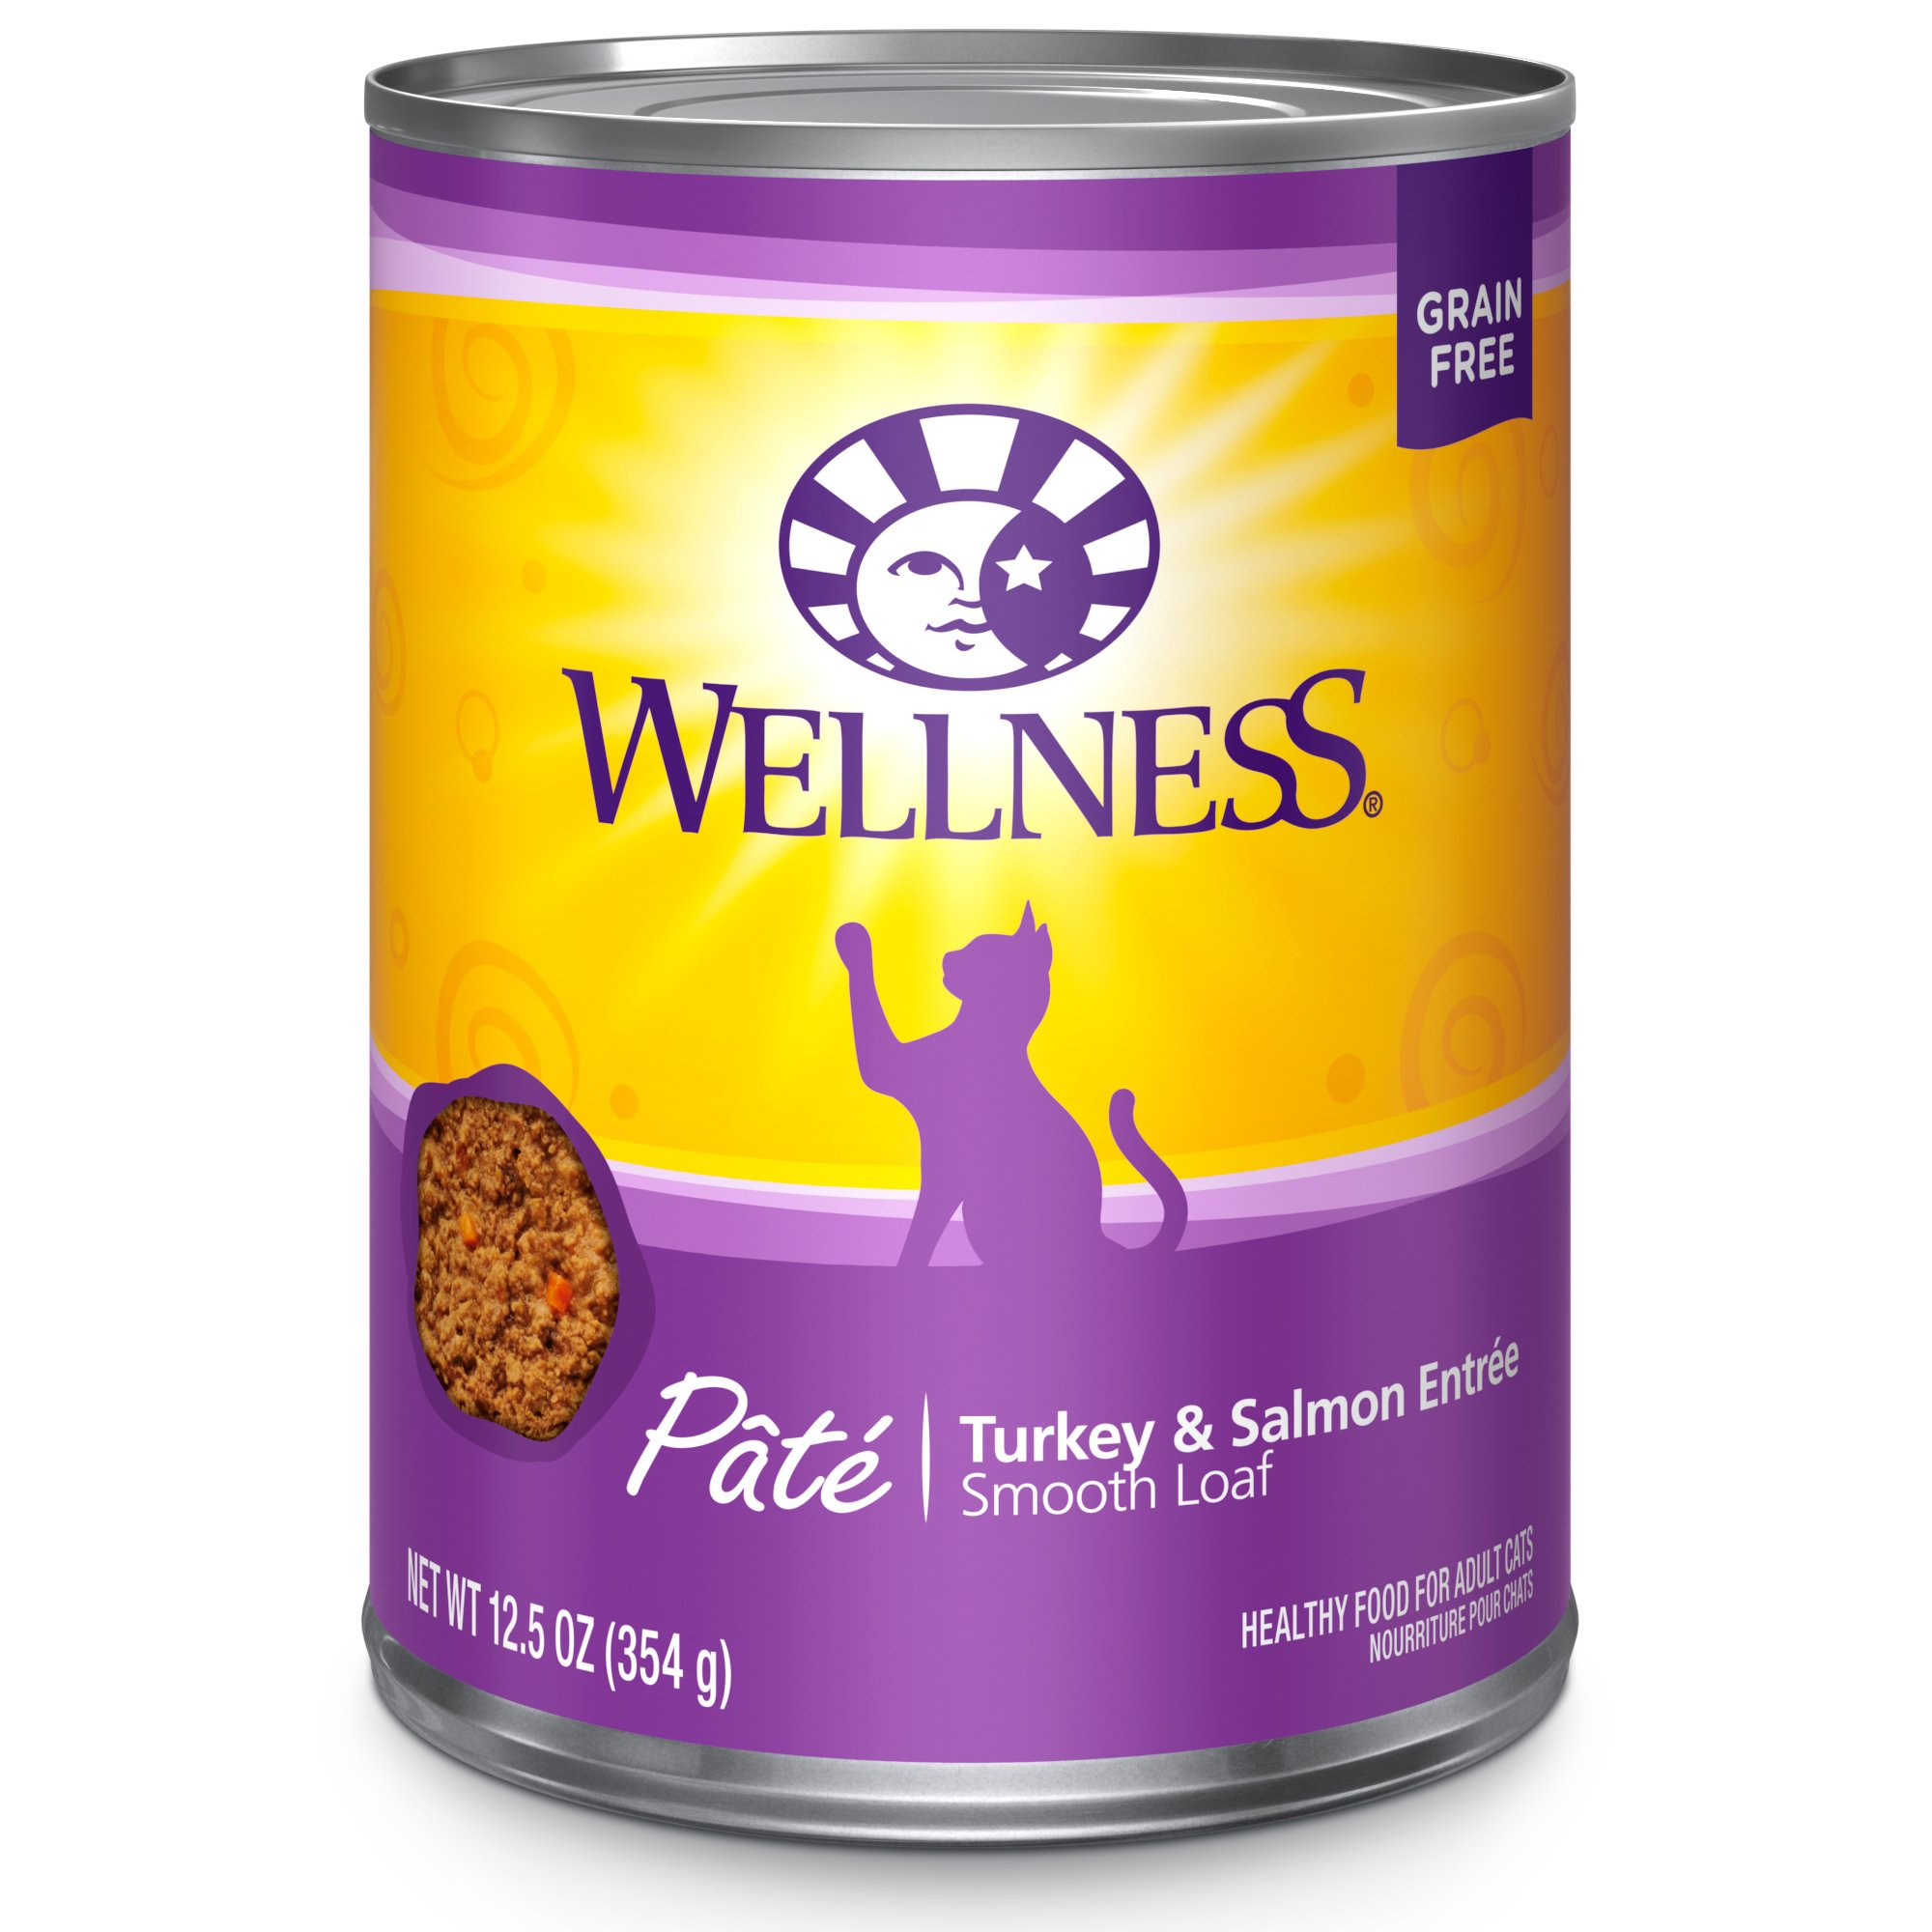 Wellness Natural Grain Free Wet Canned Cat Food, Turkey & Salmon Pate, 12.5-Ounce Can (Pack Of 12) by Wellness Natural Pet Food